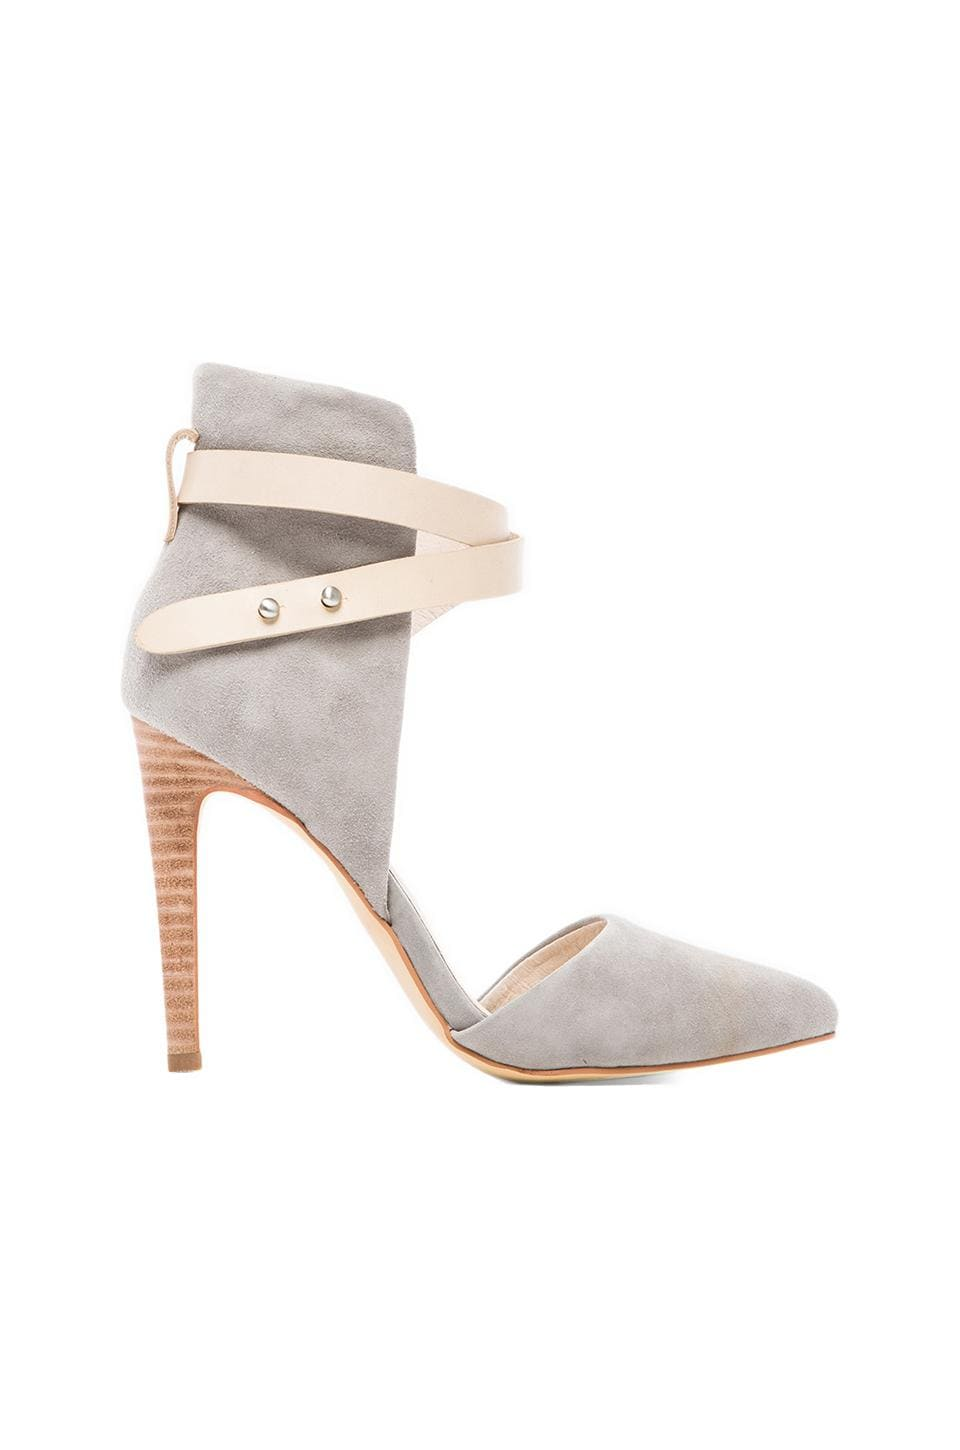 Joe's Jeans Laney Heel in Grey Suede